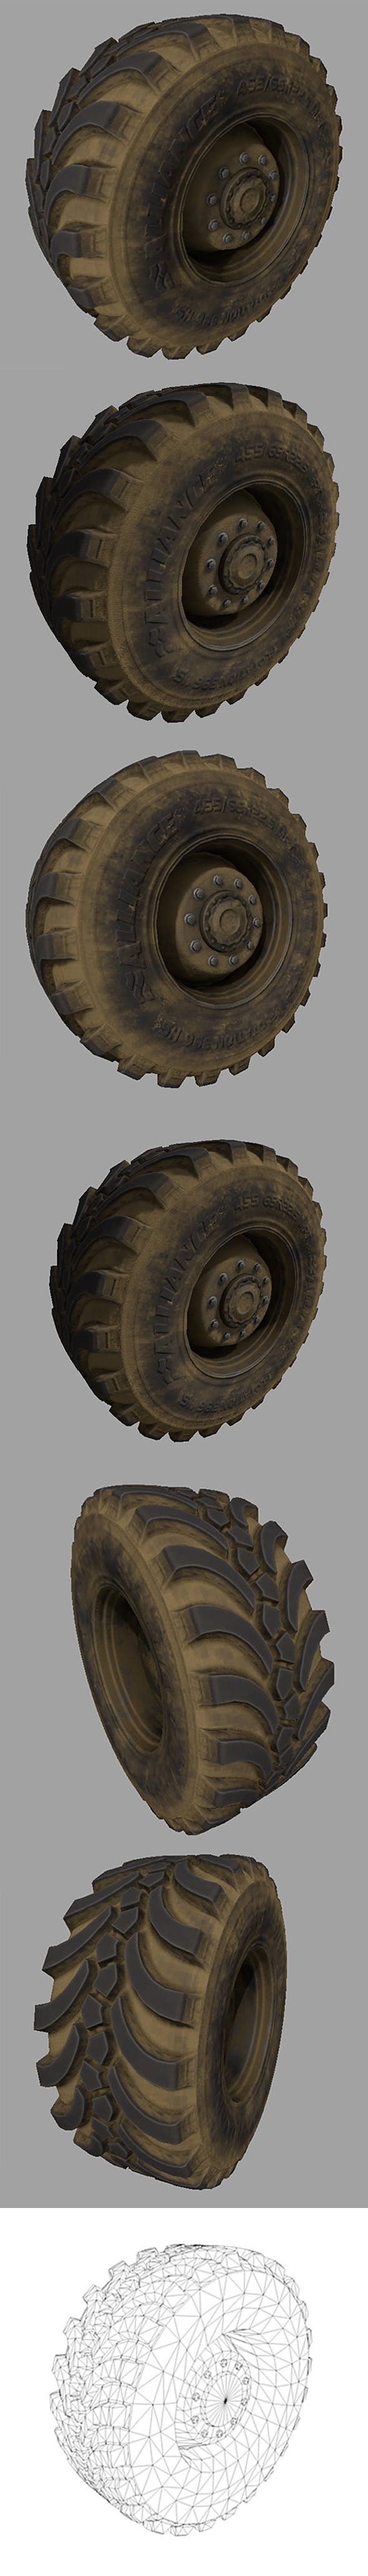 Wheel-tire with Full Textures - 3DOcean Item for Sale